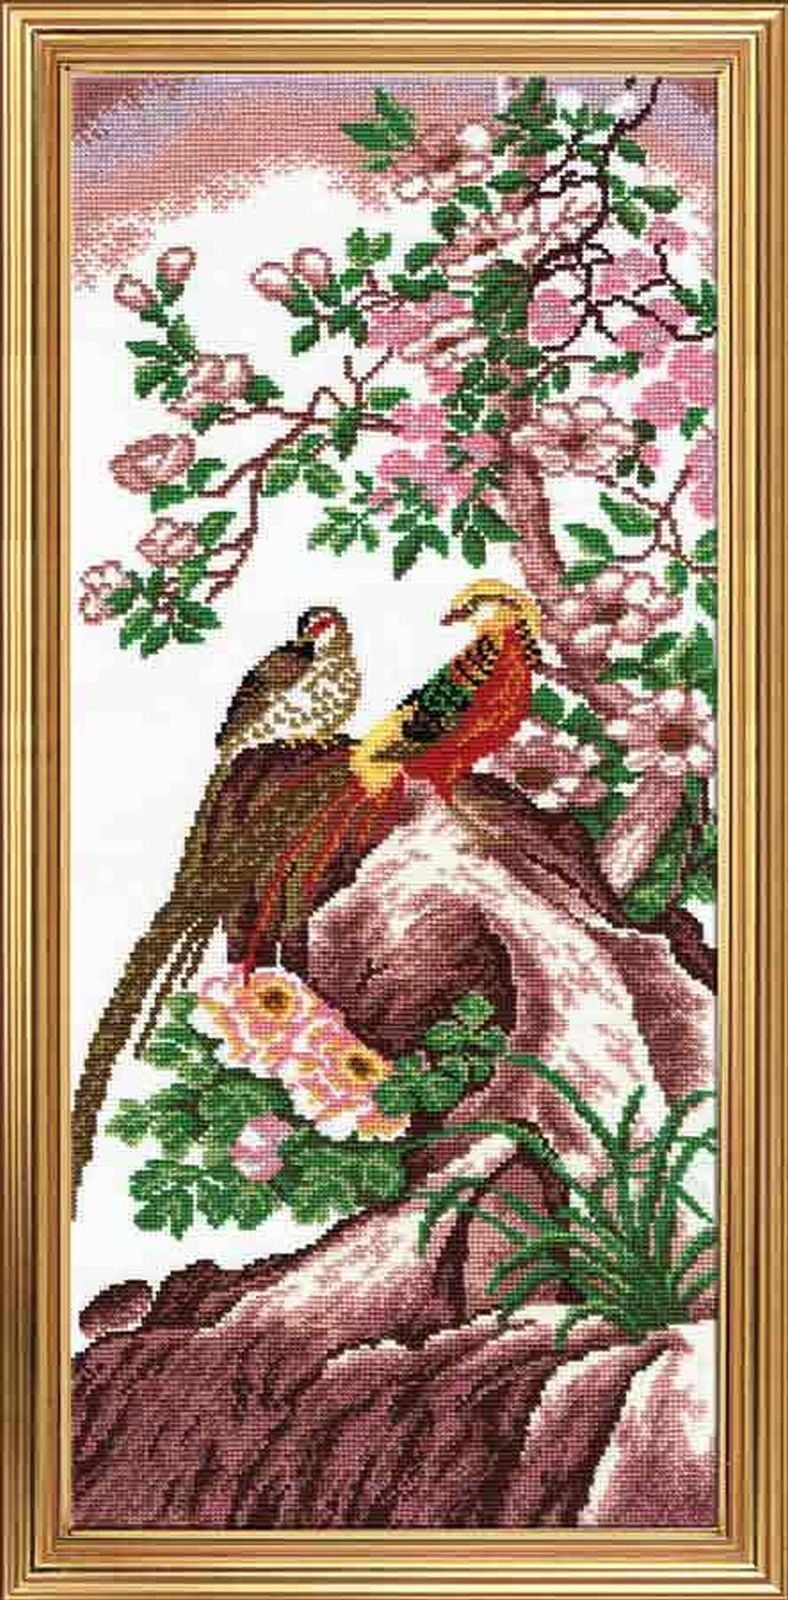 Chinese Birds Cross Stitch Kit With Color Symbolic Scheme Sku624